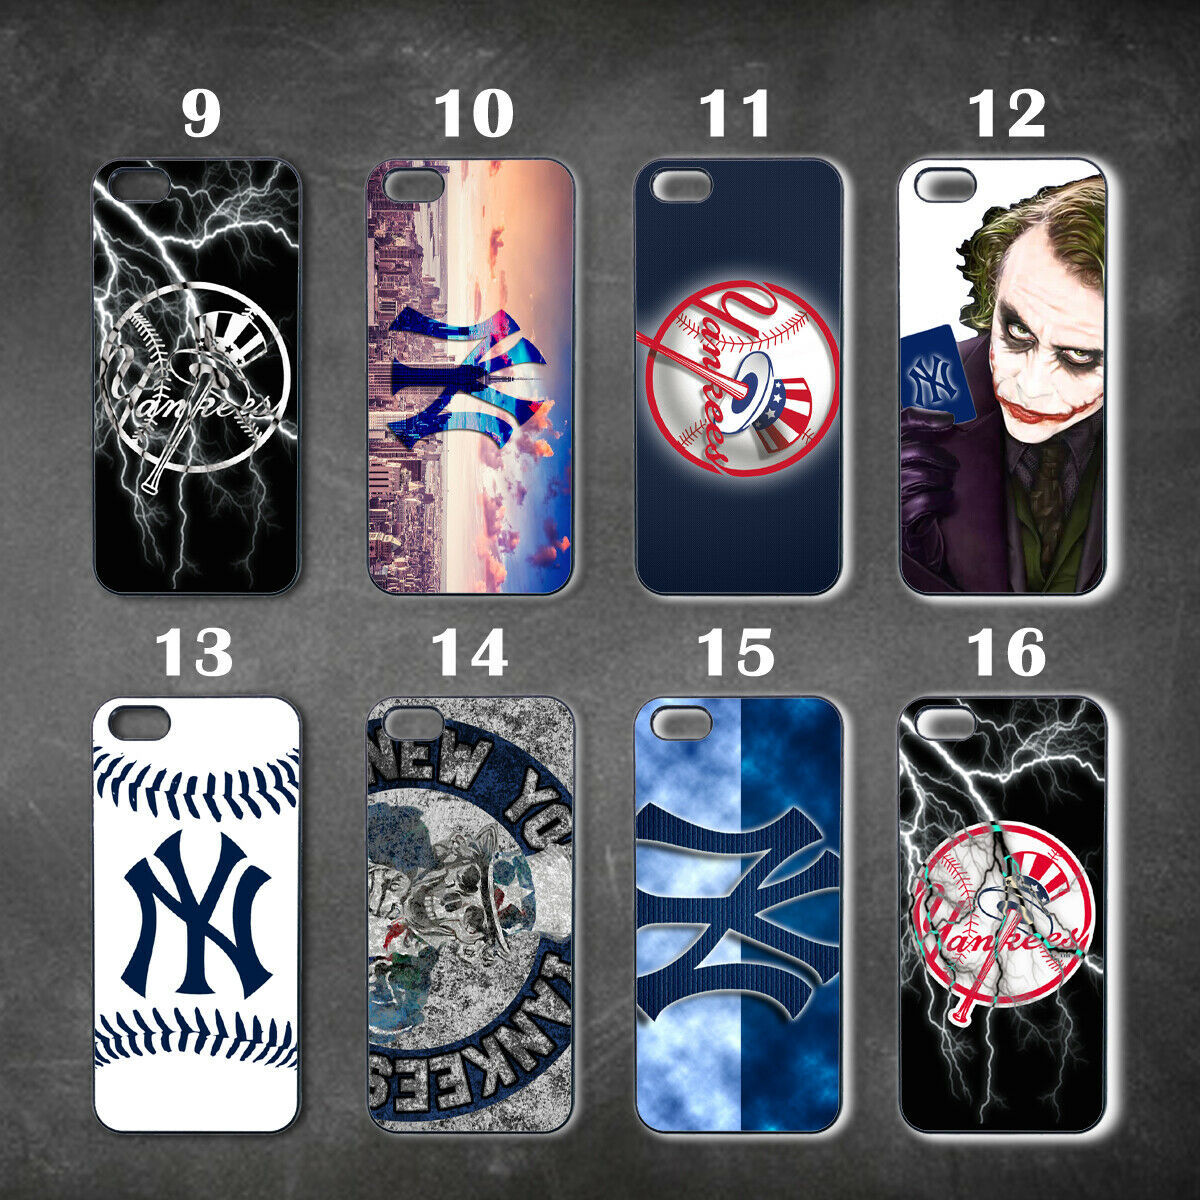 New York Yankees Galaxy S10 case S10E S10 plus case cover LG V40 ThinQ